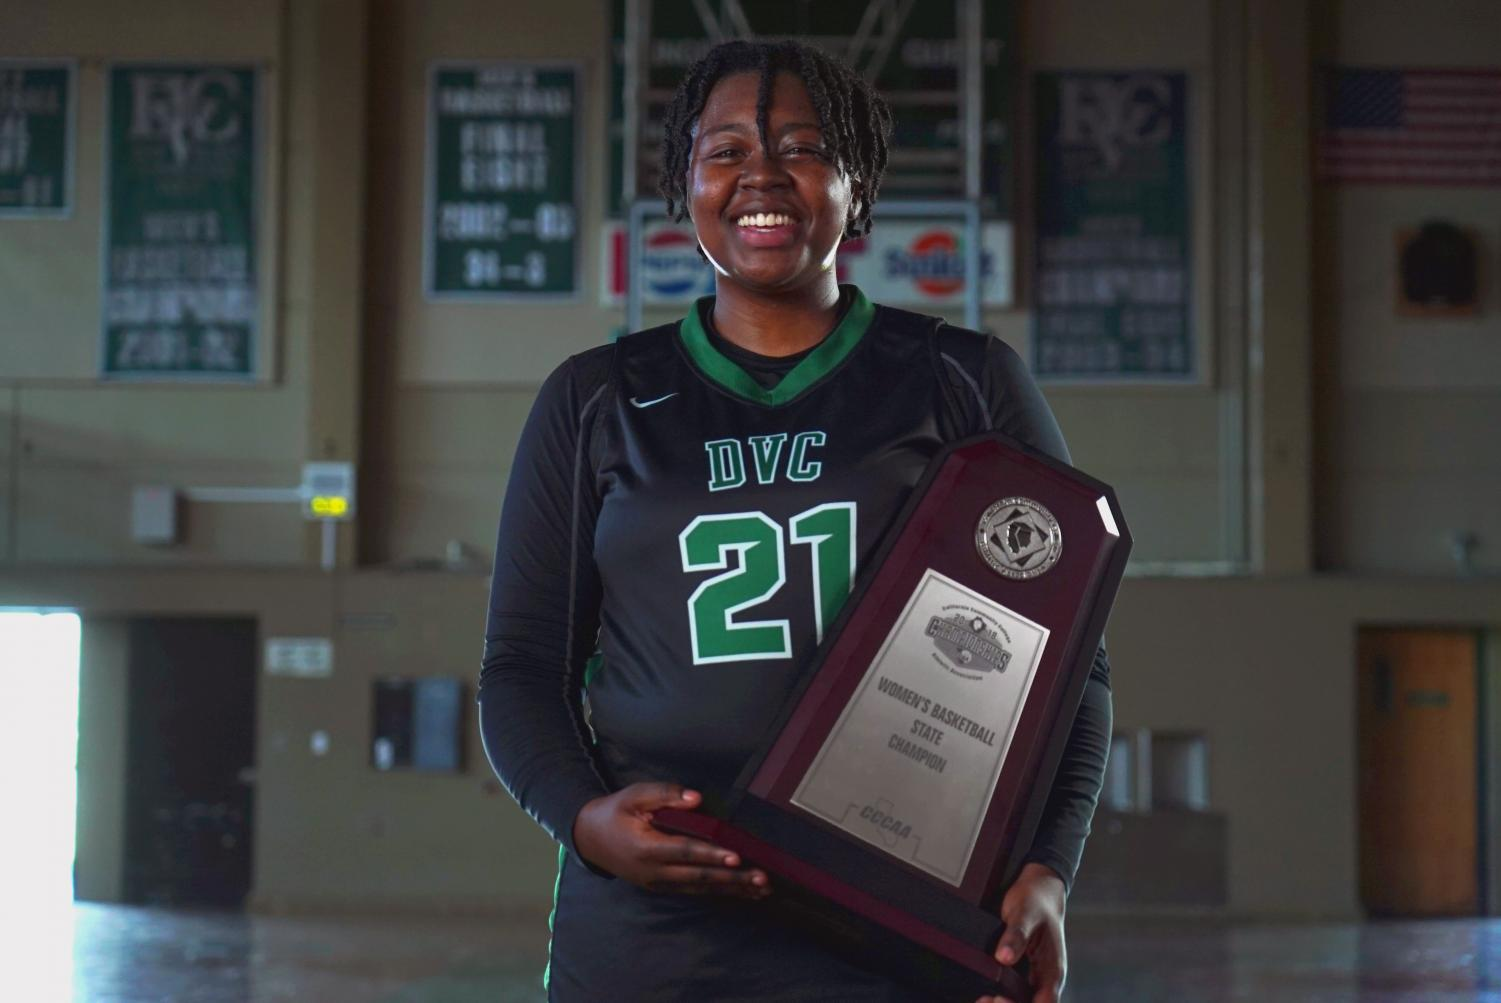 Zahria Hendrix was awarded with MVP honors this season, making her a star on the court. (Ethan Anderson/The Inquirer).